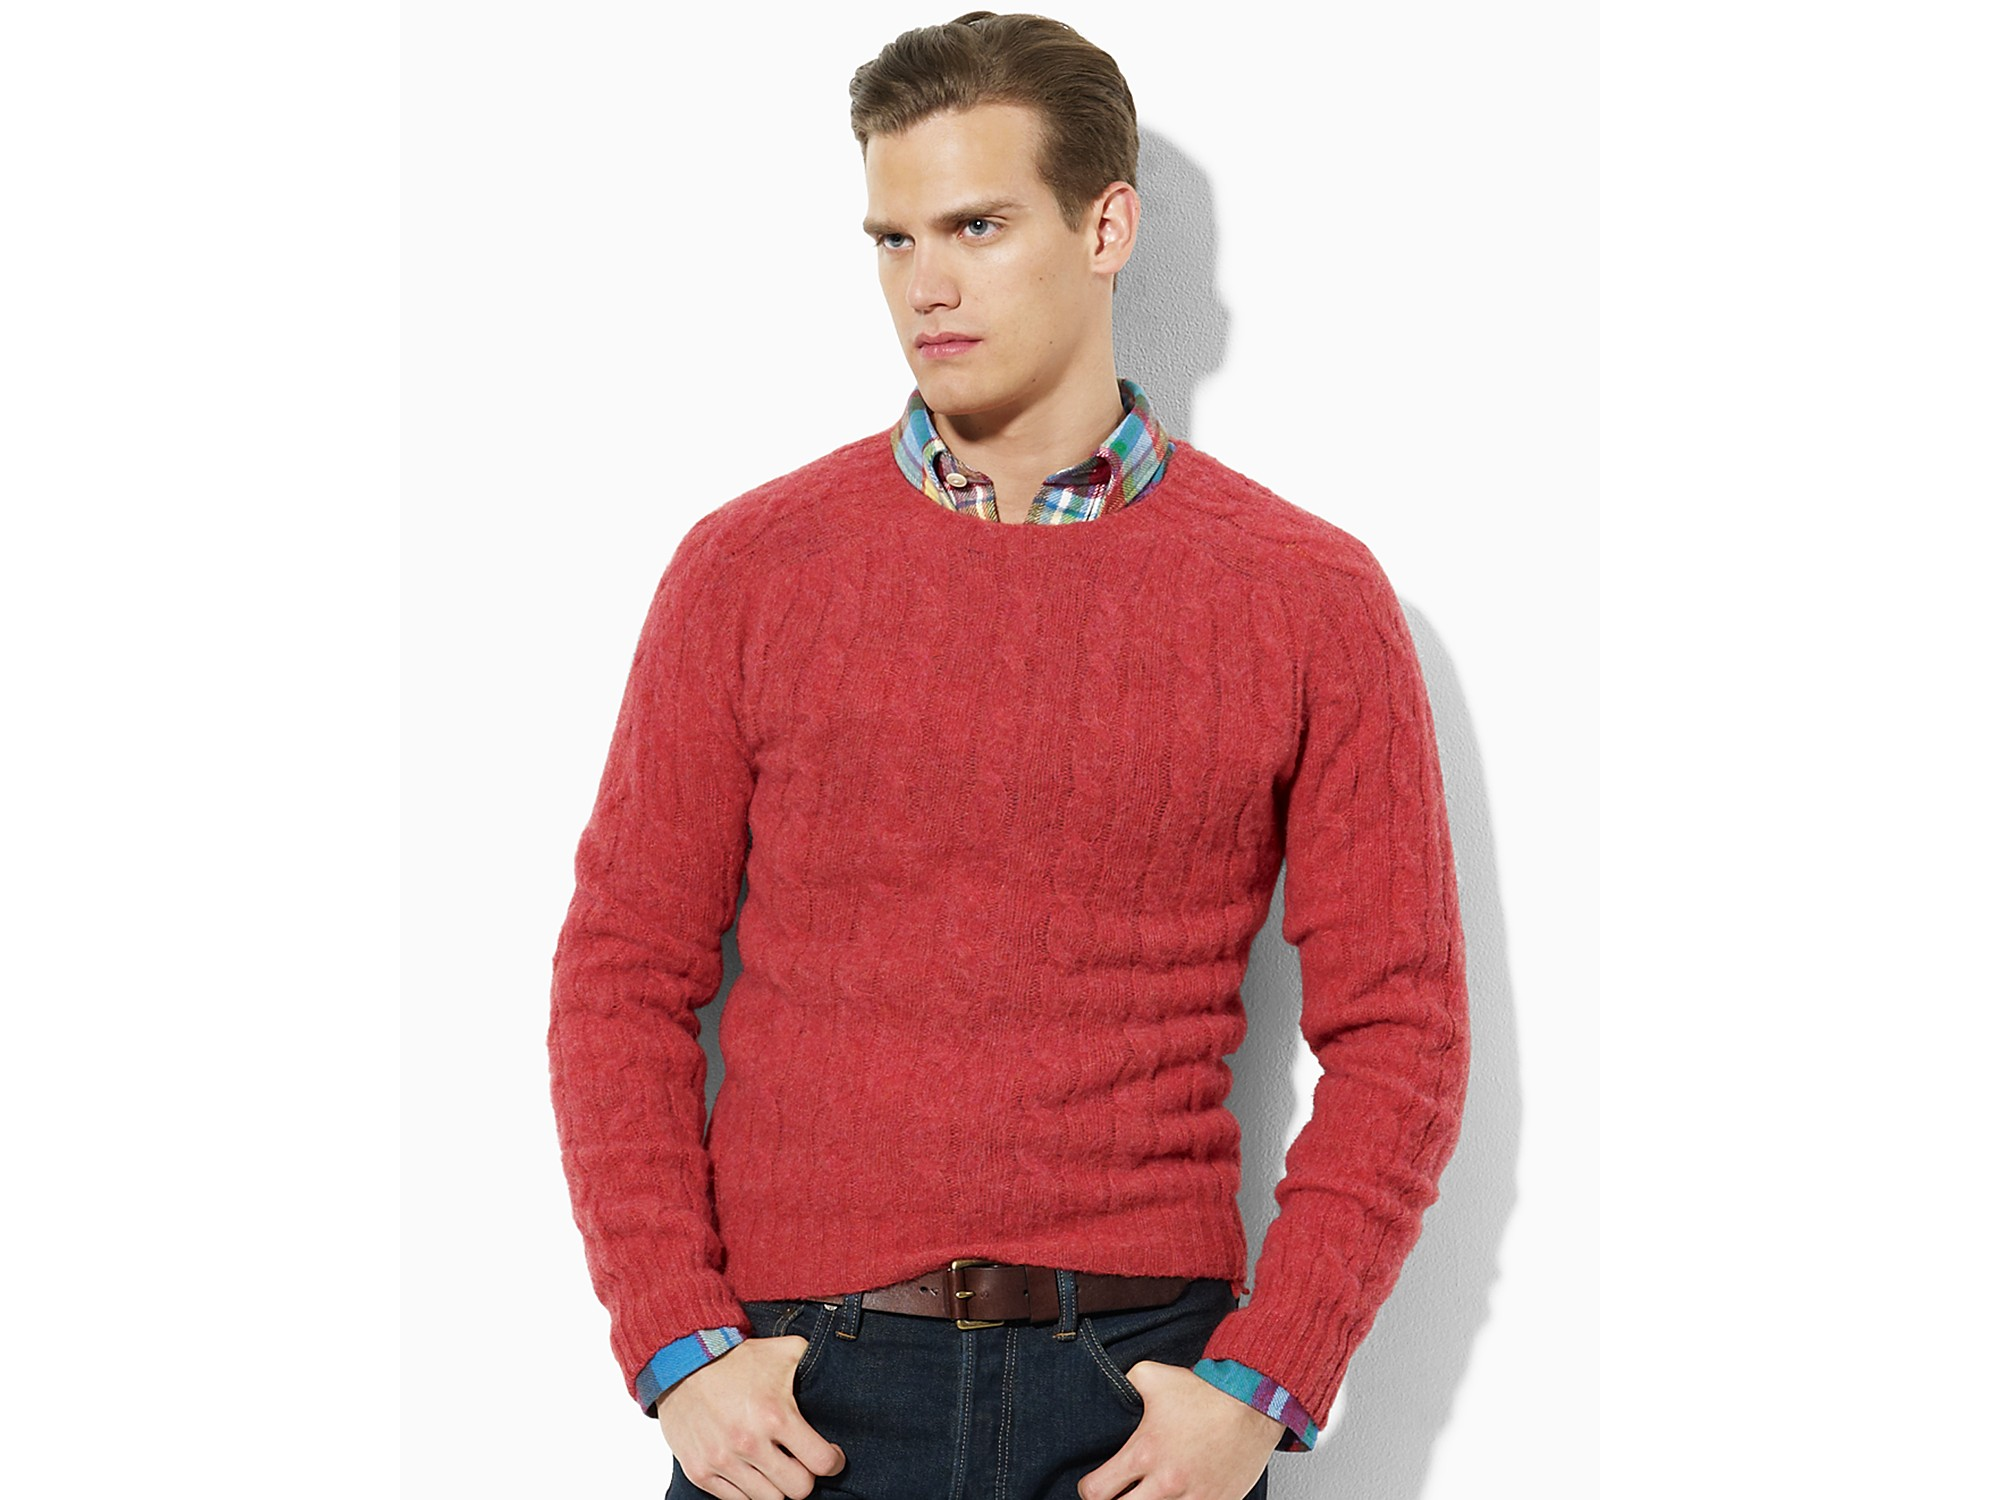 Lyst Ash Polo Ralph Lauren Wool Cashmere Cable Knit Sweater In